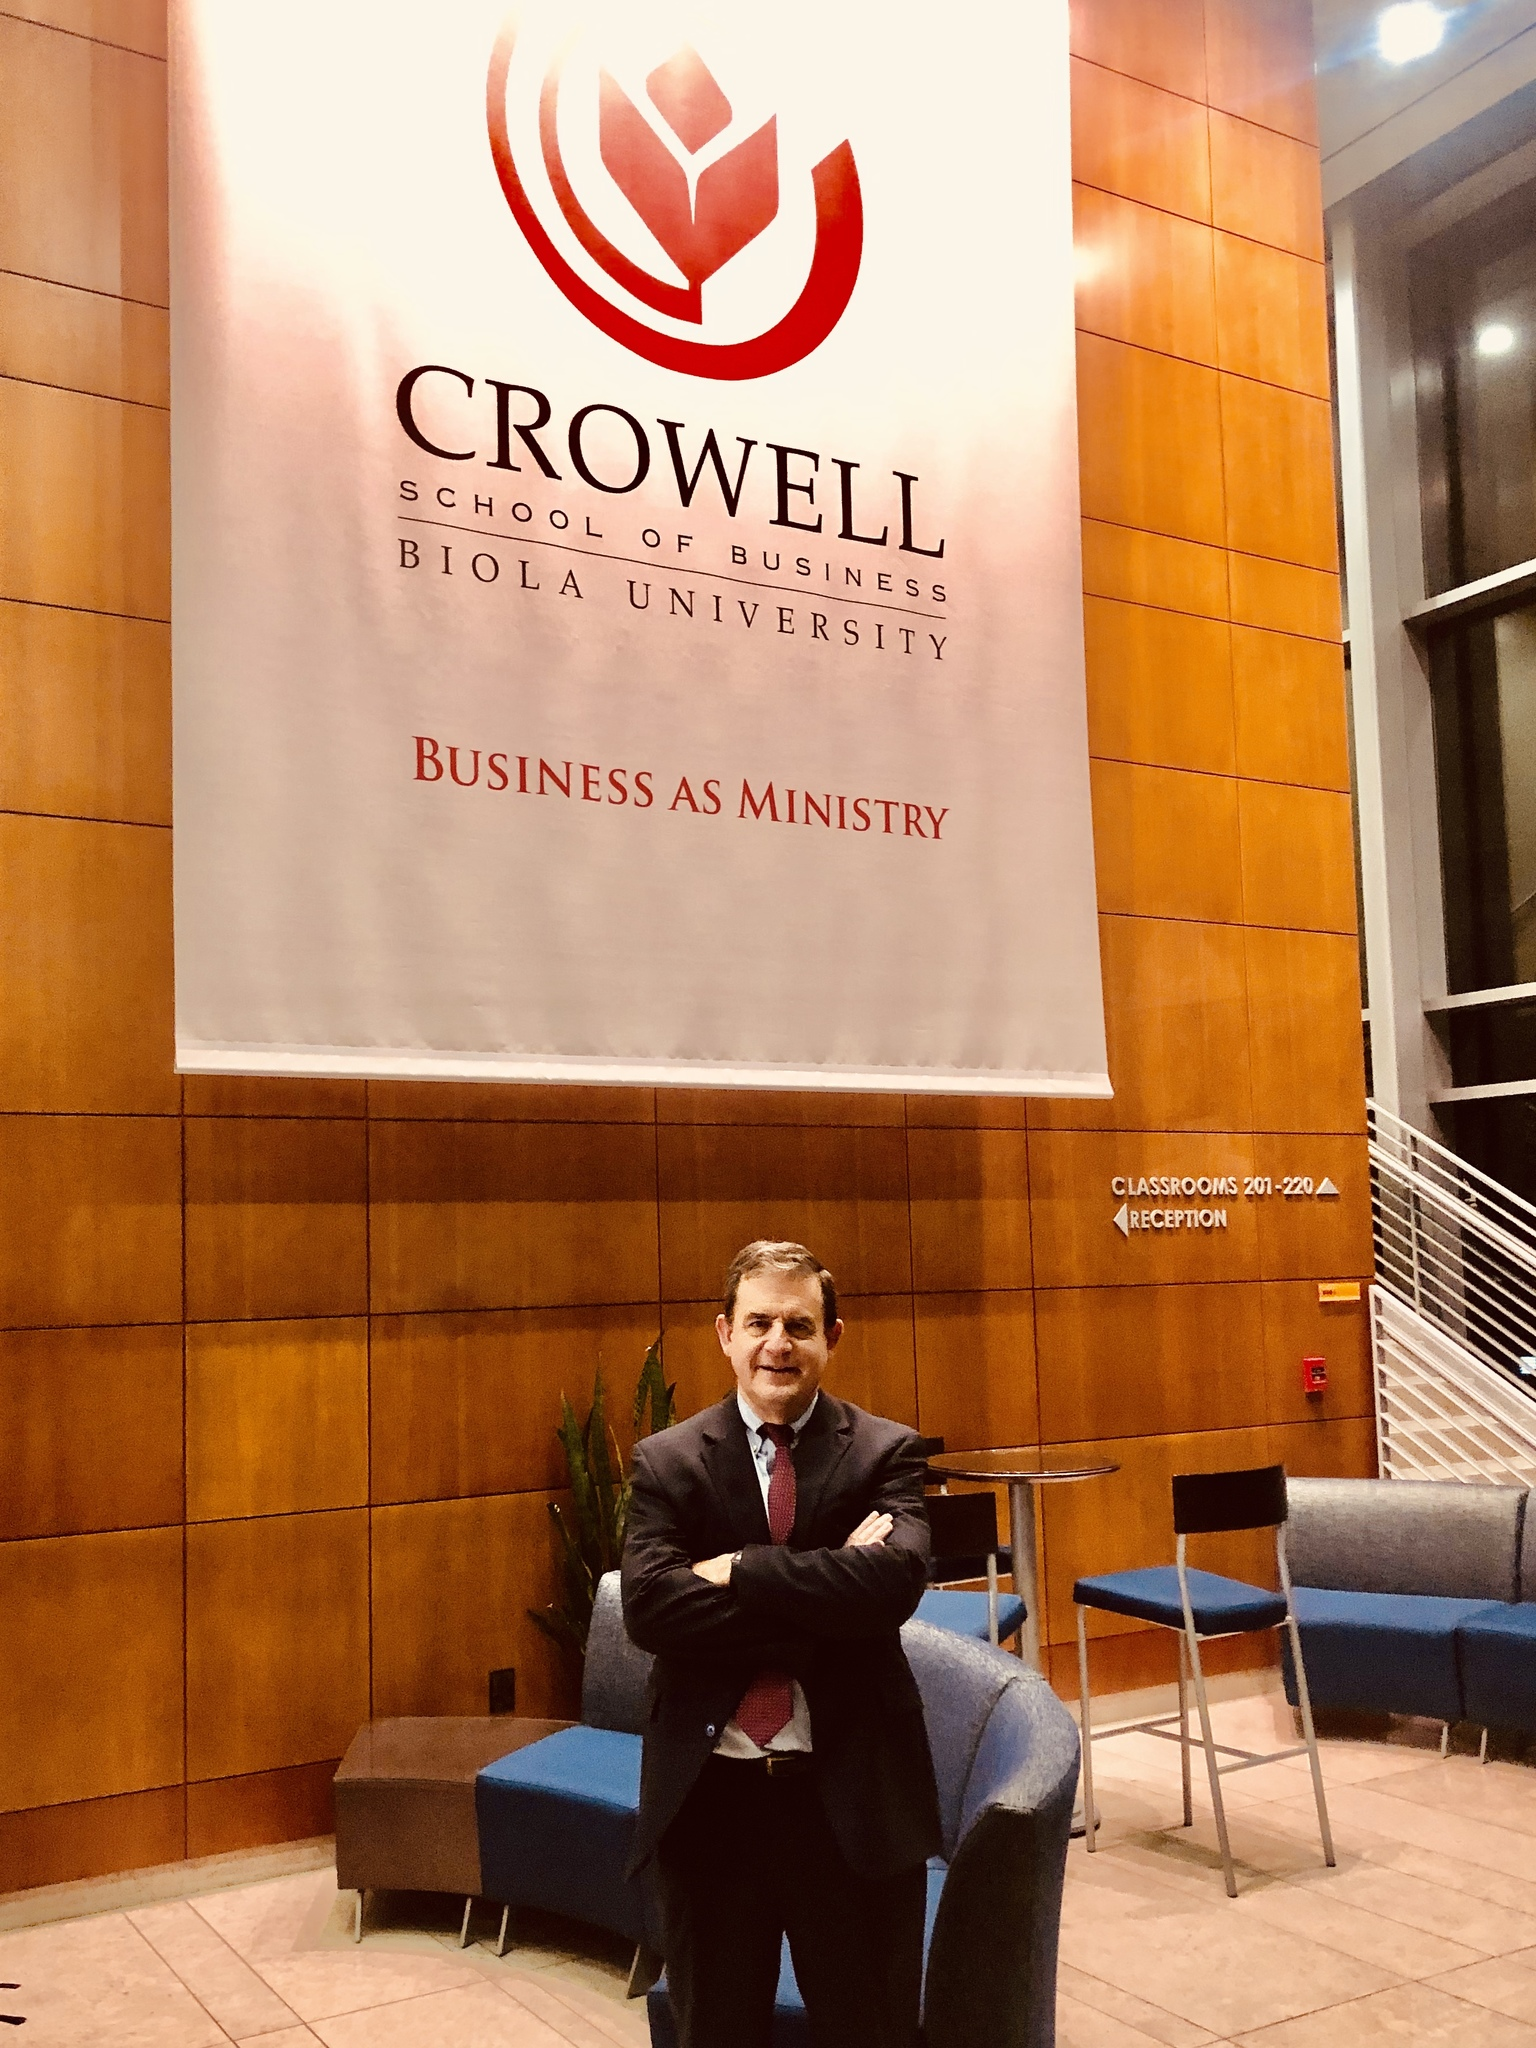 Bob Doll in front of Crowell lobby banner